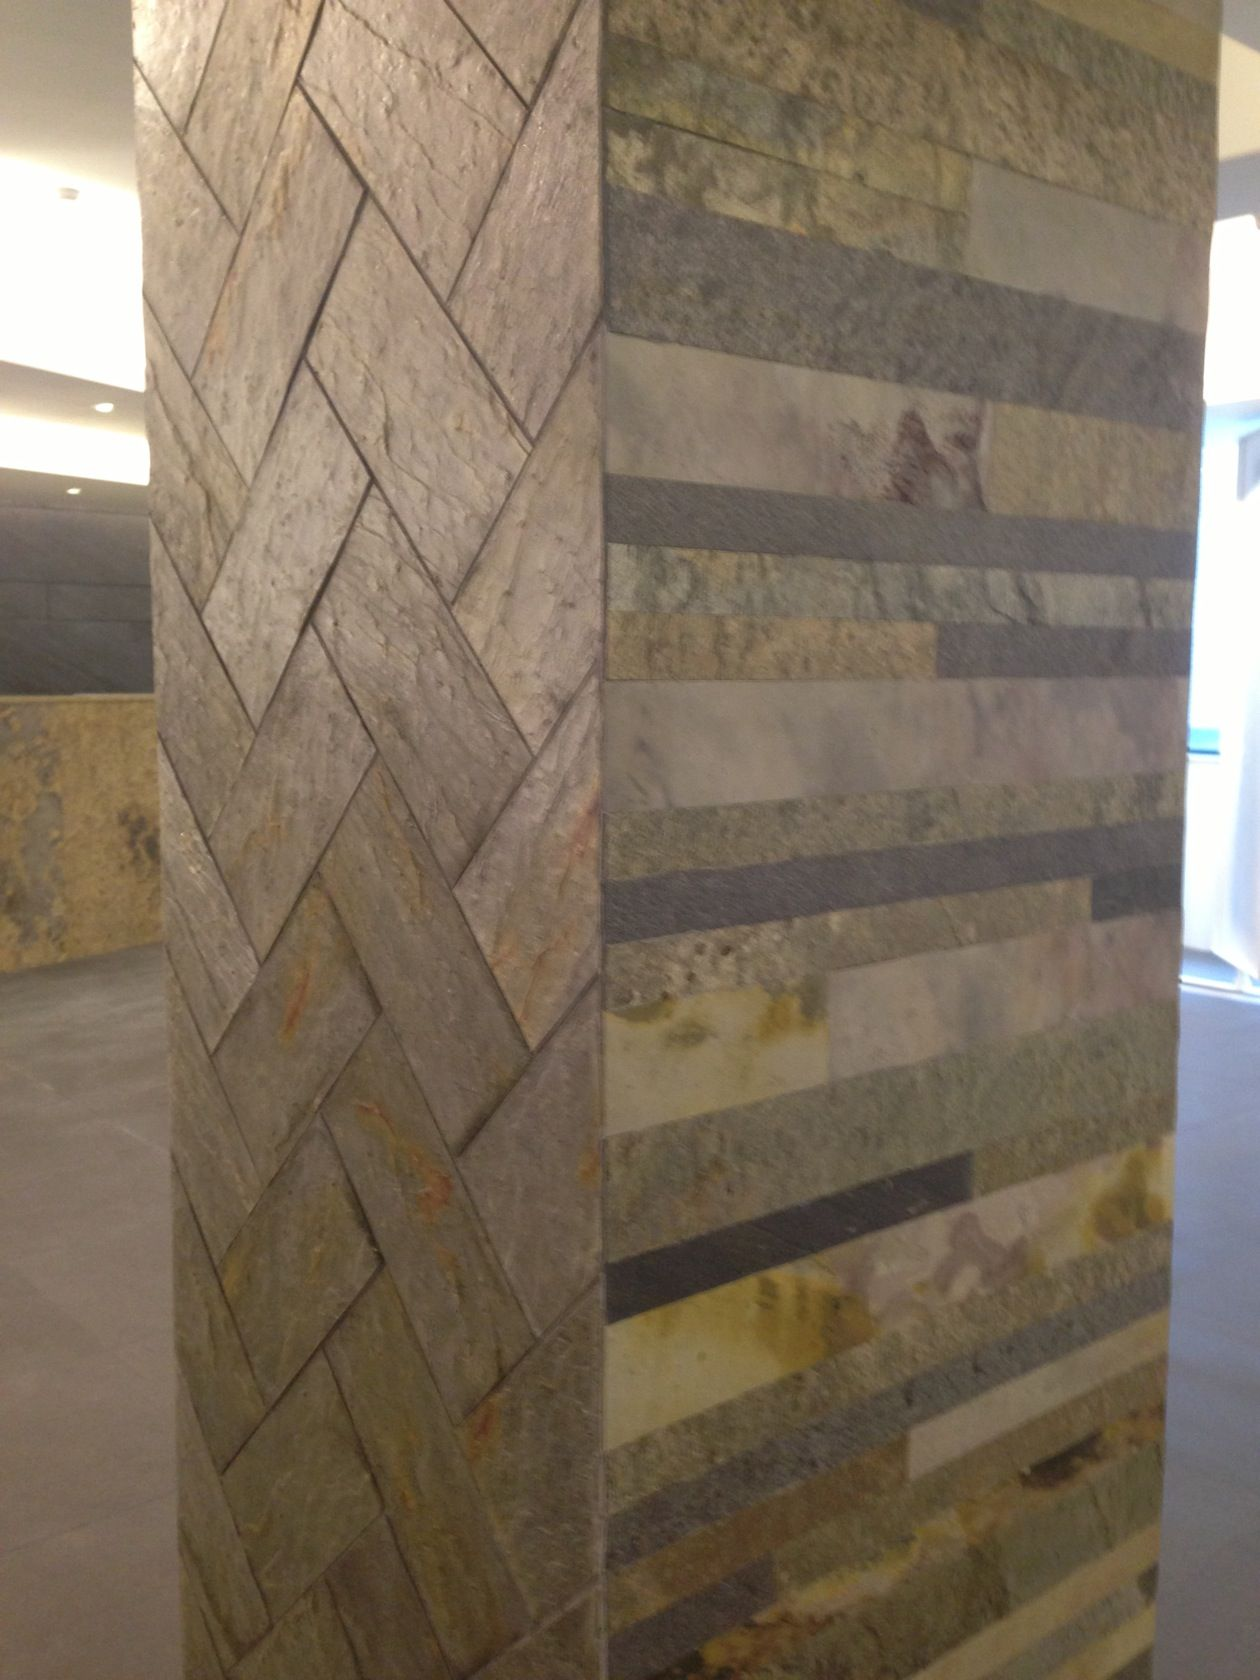 Stone marble granite exterior wall cladding view cladding wall - Slate Veneer Tile Sheet Wall Colu N Cladding Mixed Tile Pattern Stone Veneertile Patternsslatetilesmarblescommercial